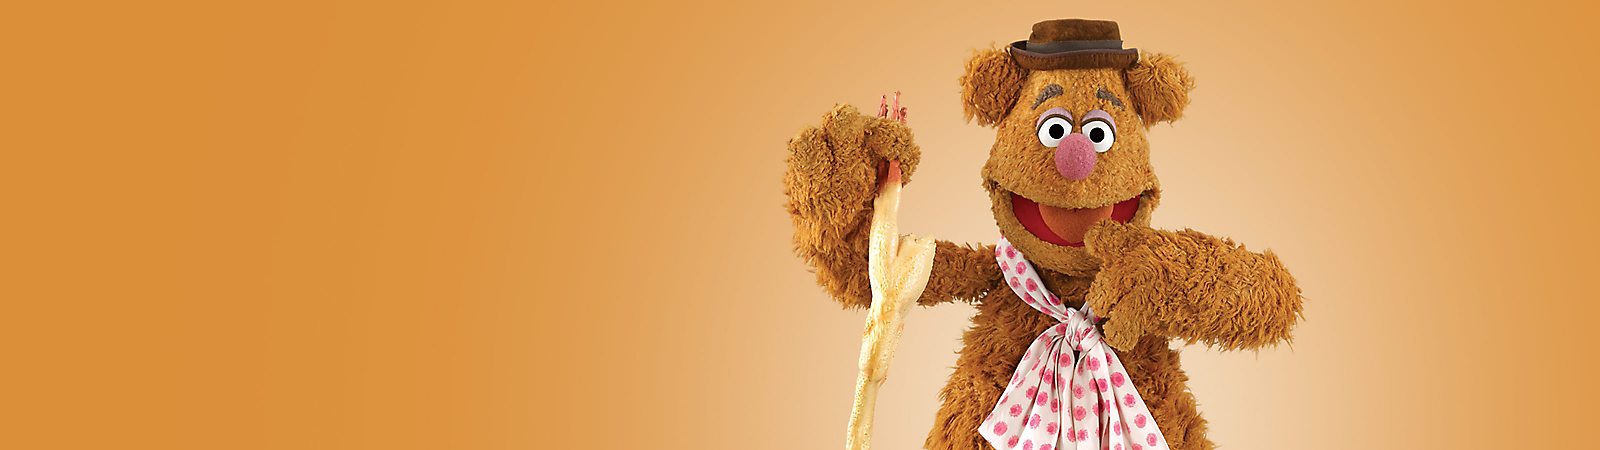 Background image of Fozzie Bear